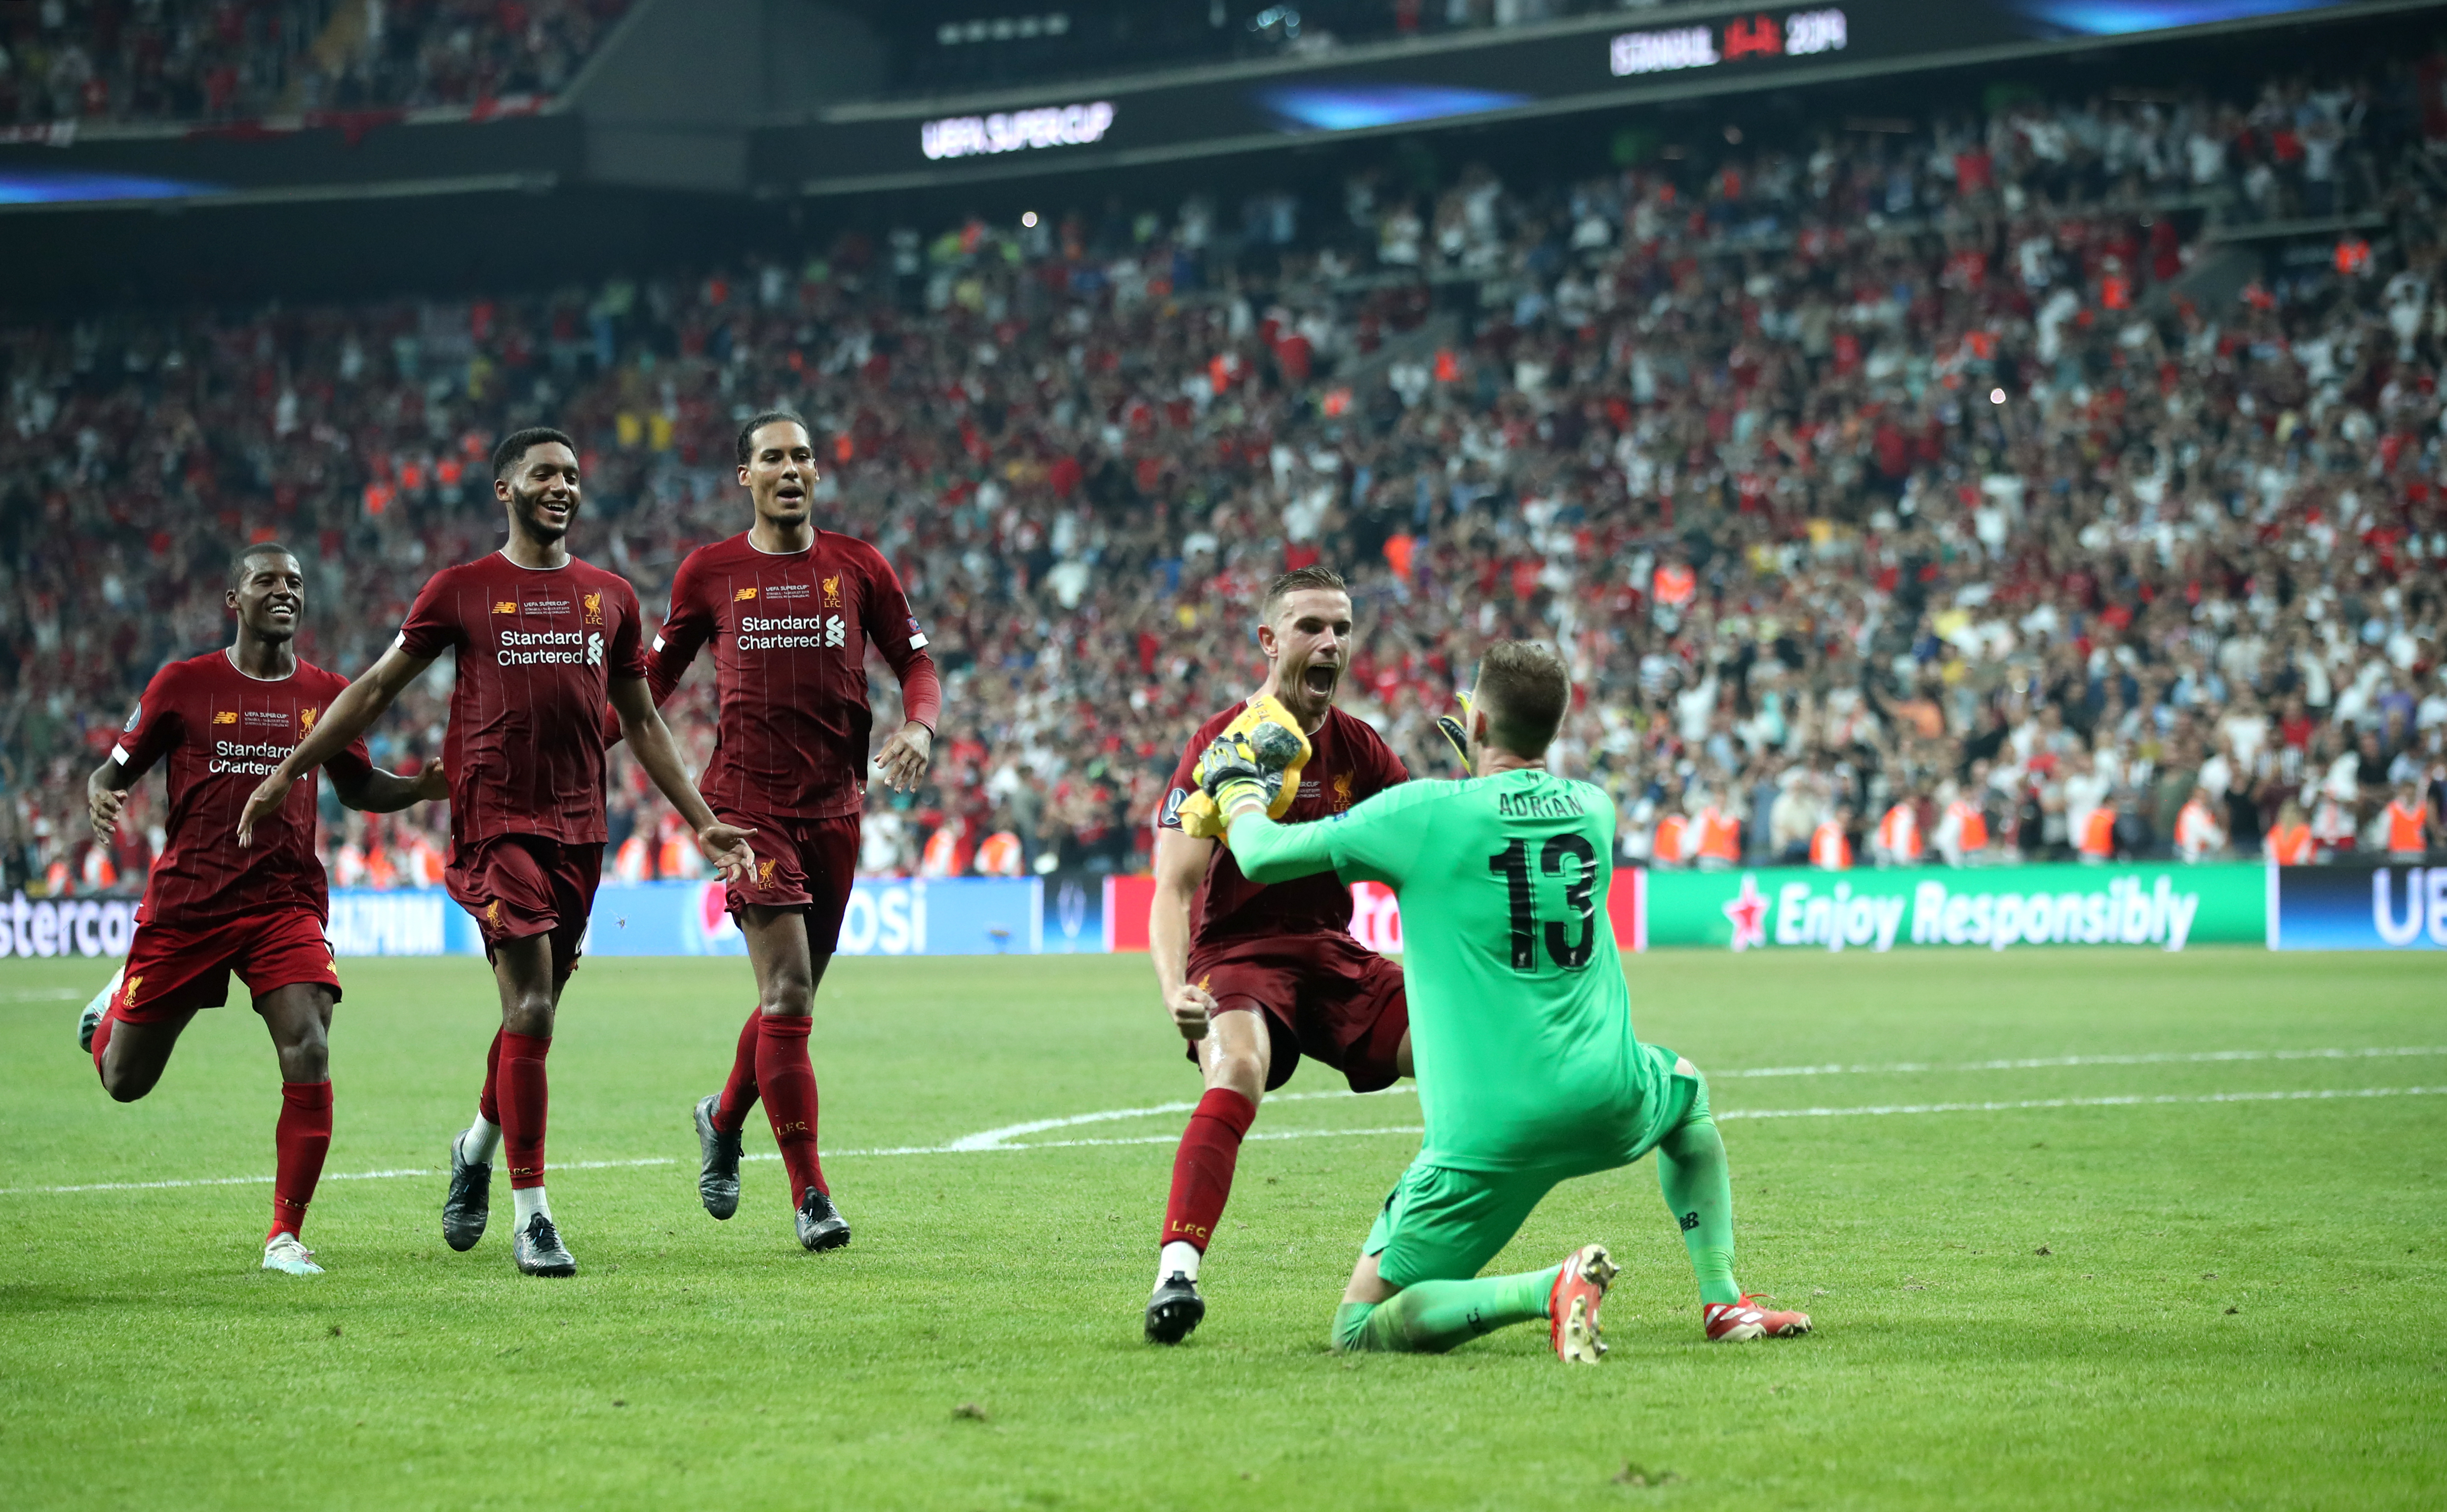 Adrian was the hero as Liverpool beat Chelsea on penalties to win the UEFA Super Cup